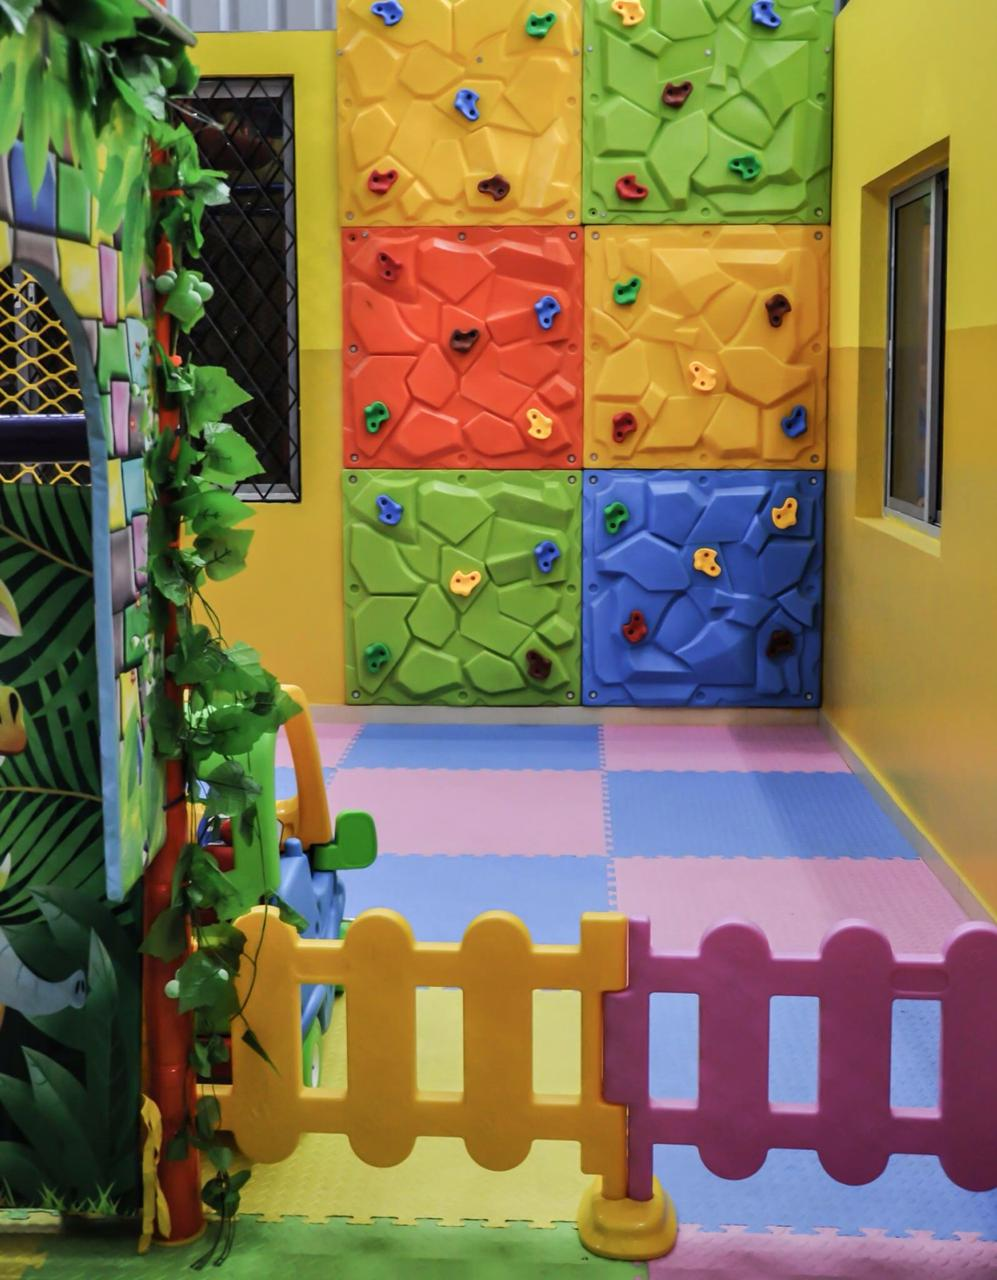 Kids entertainment zones